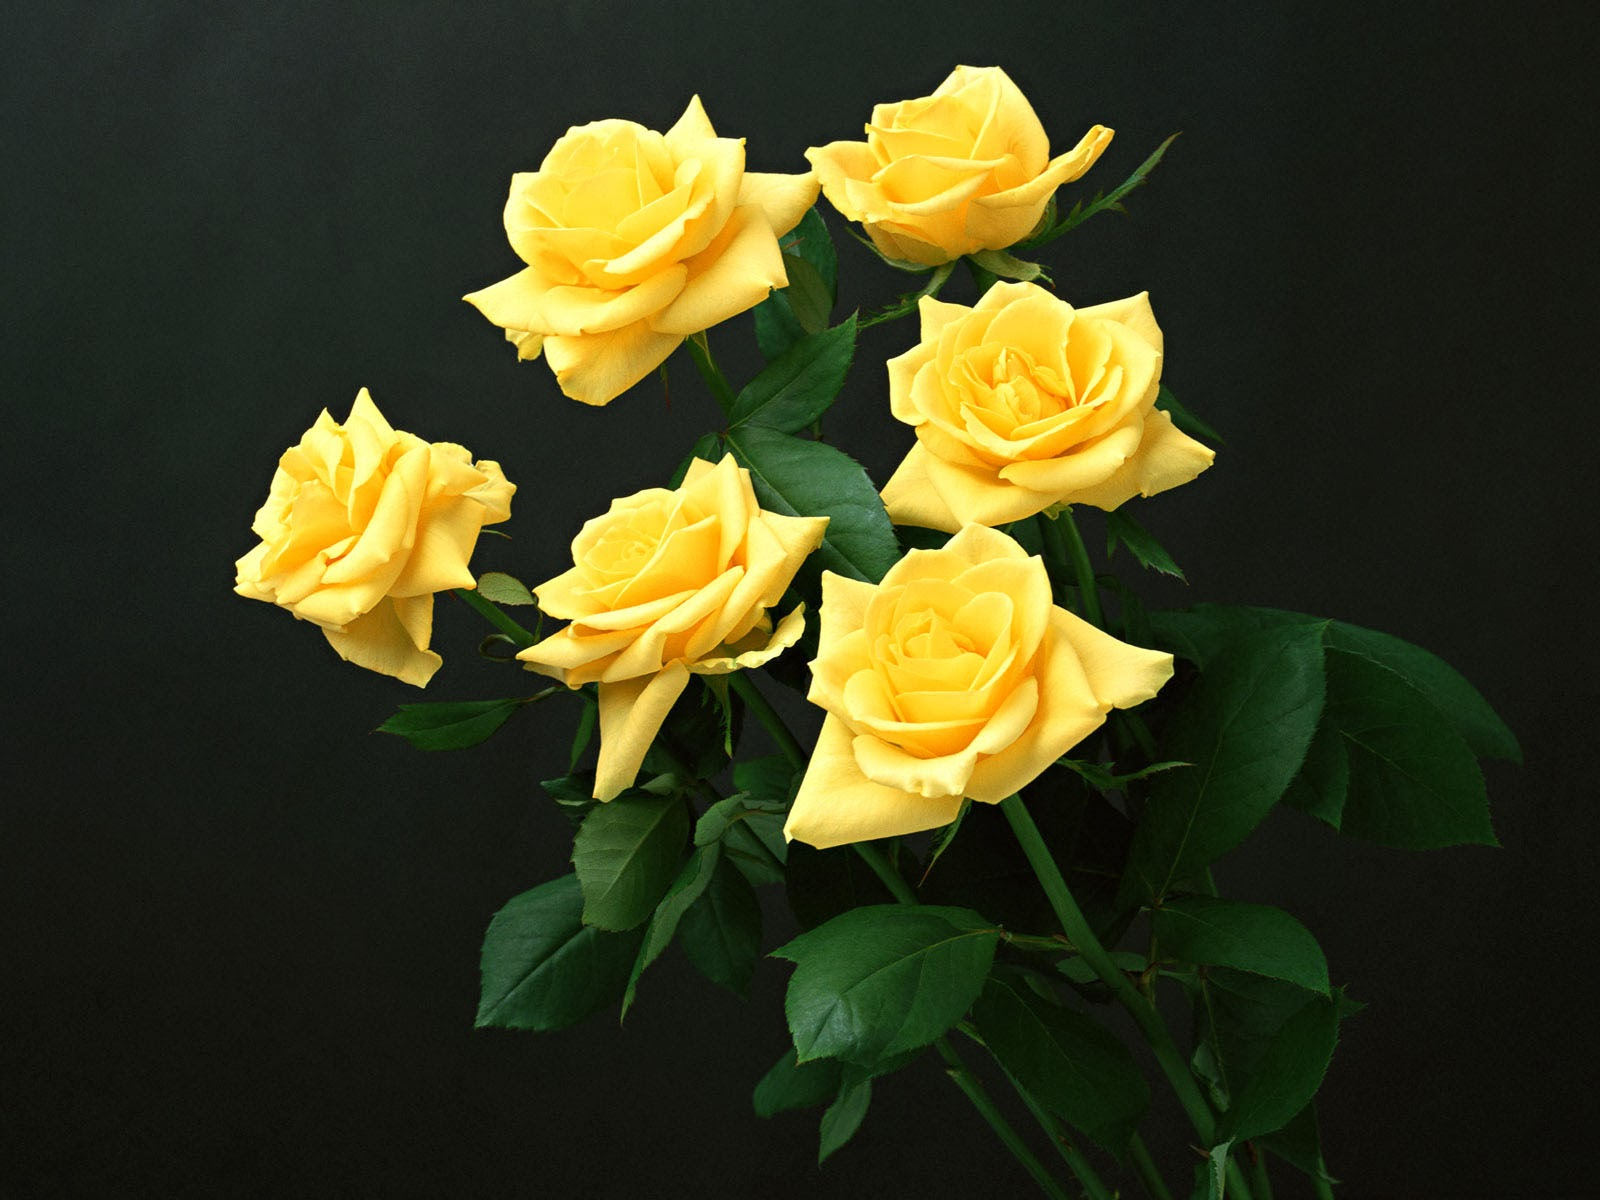 Wallpapers yellow rose wallpapers Beautiful flowers images